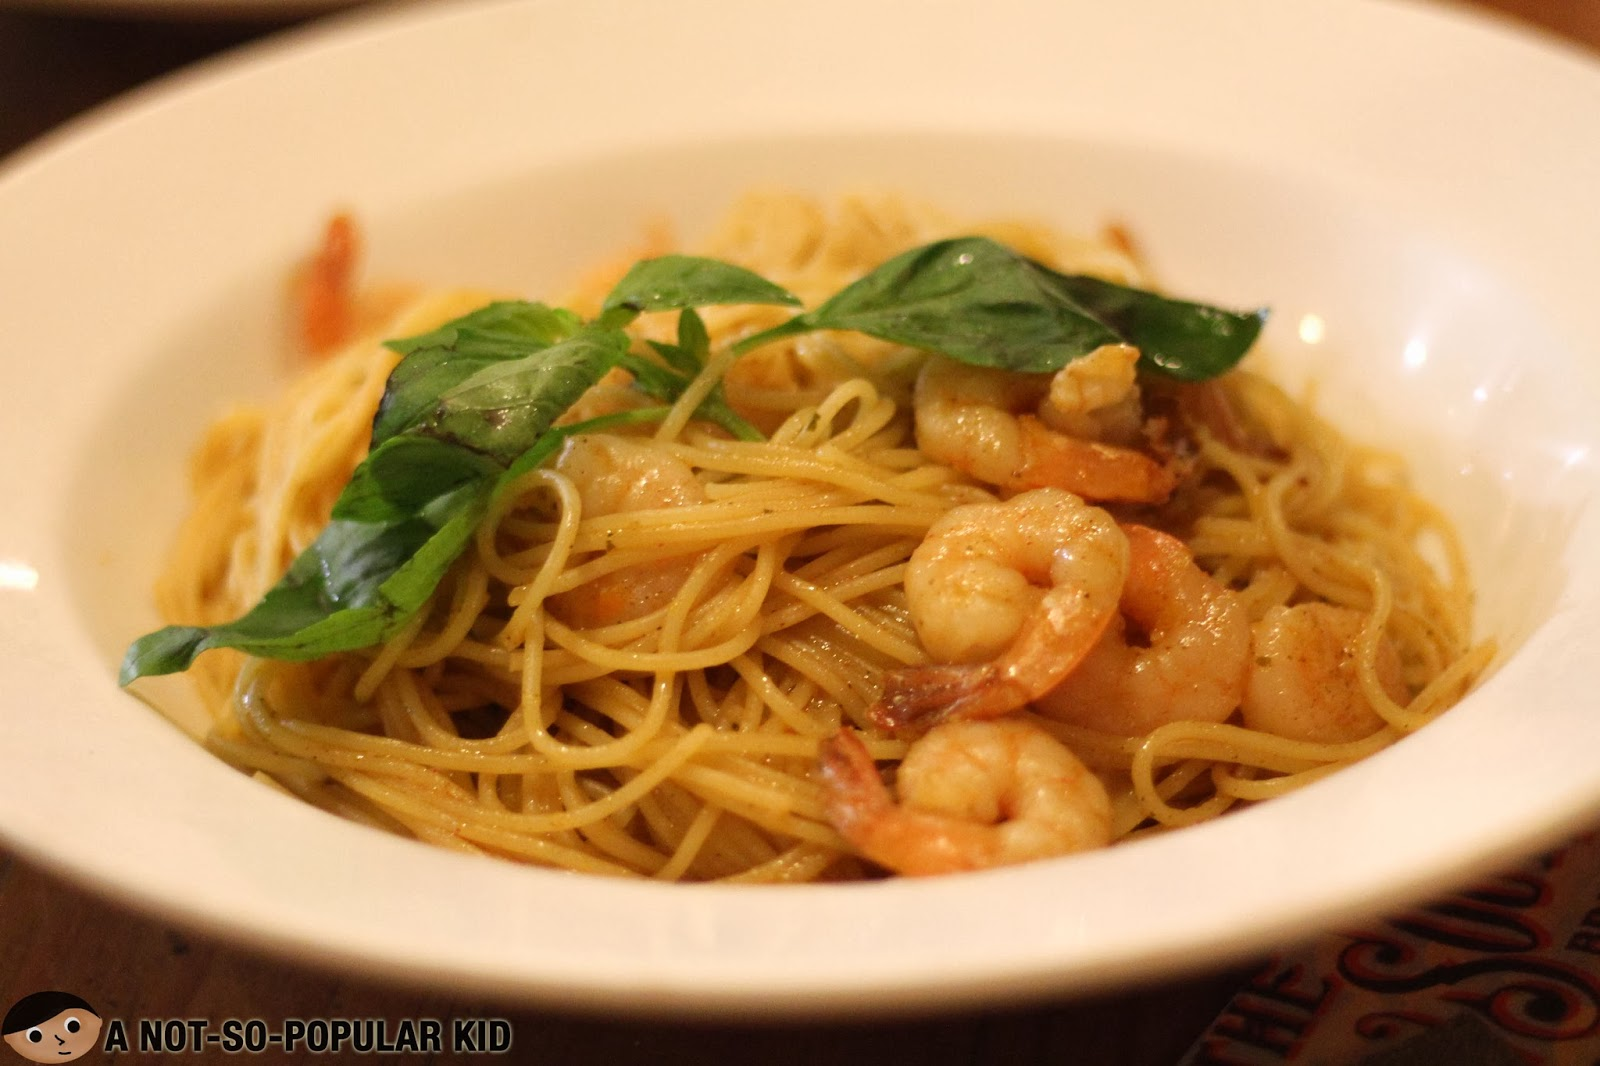 Shrimp Aglio Olio Pasta - simple but tasty!